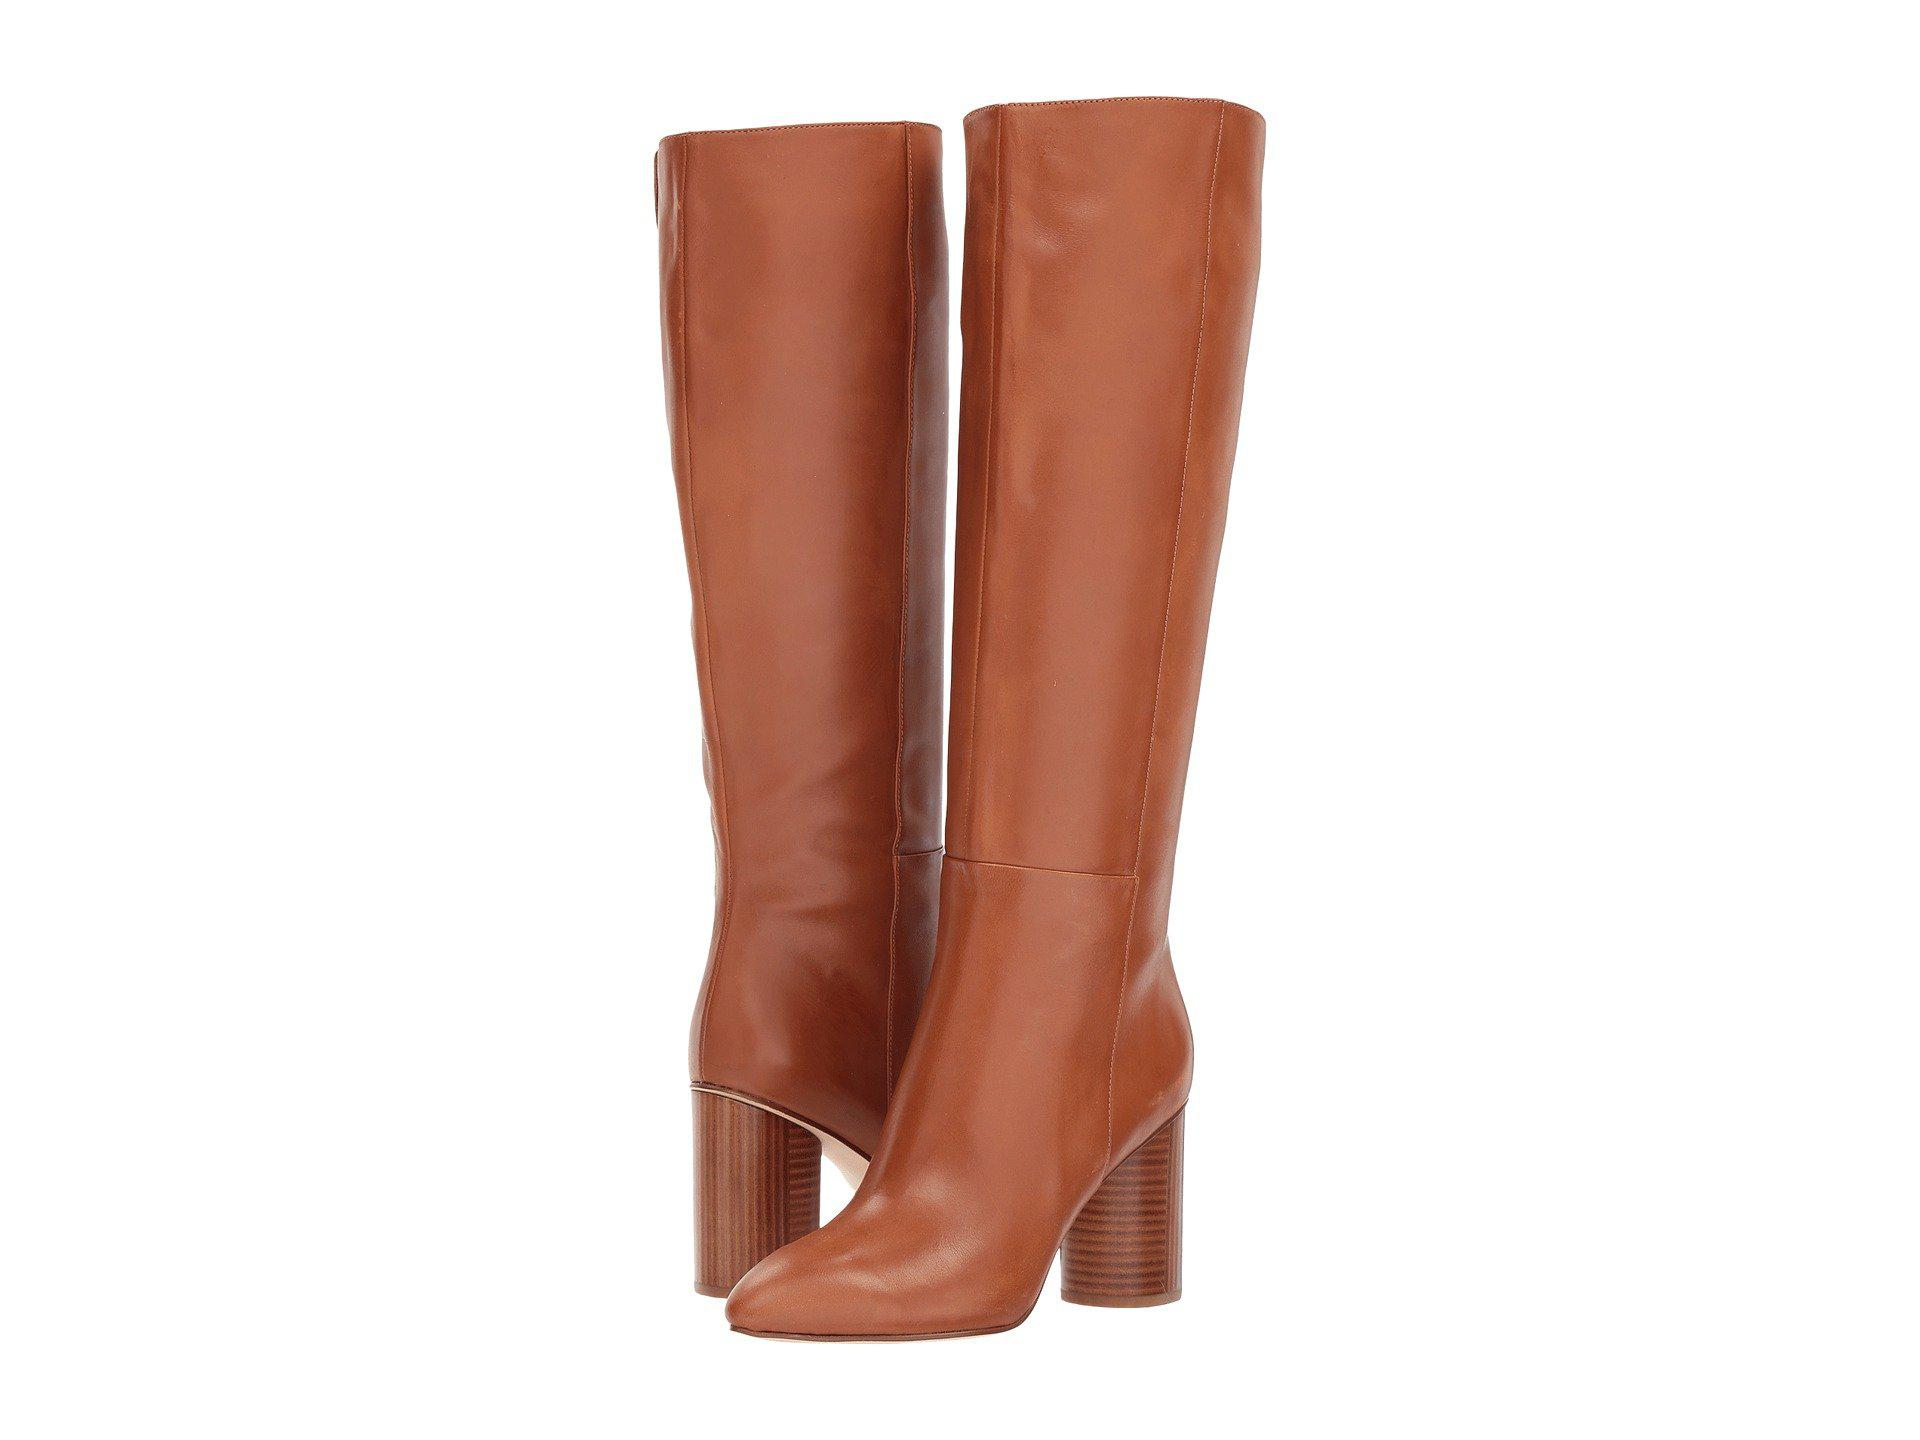 27ef59e22c34 Lyst - Nine West Christie Knee High Boot in Brown - Save 41%